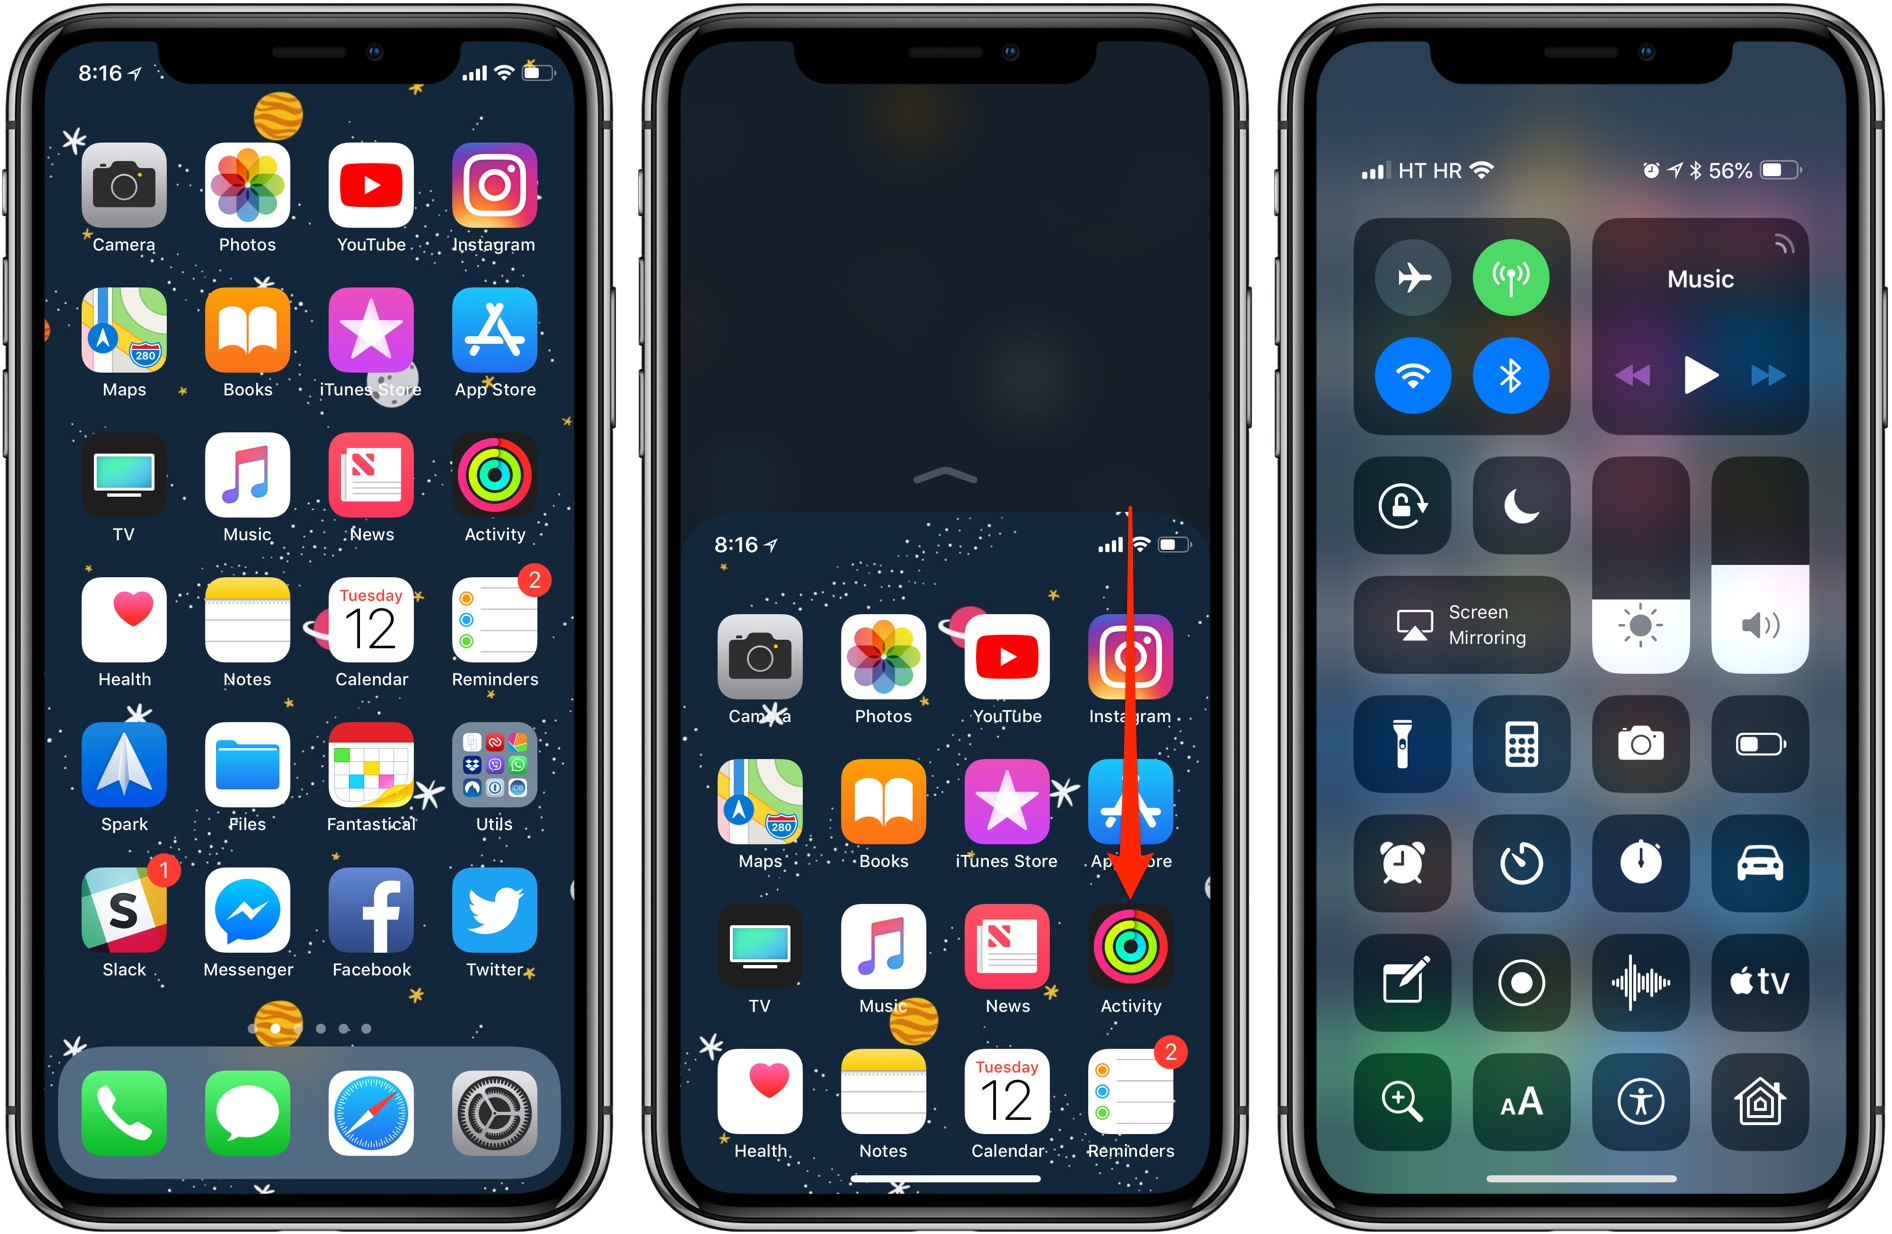 Reachability on iOS 12: pulling down Control Center from the middle-right corner of the display